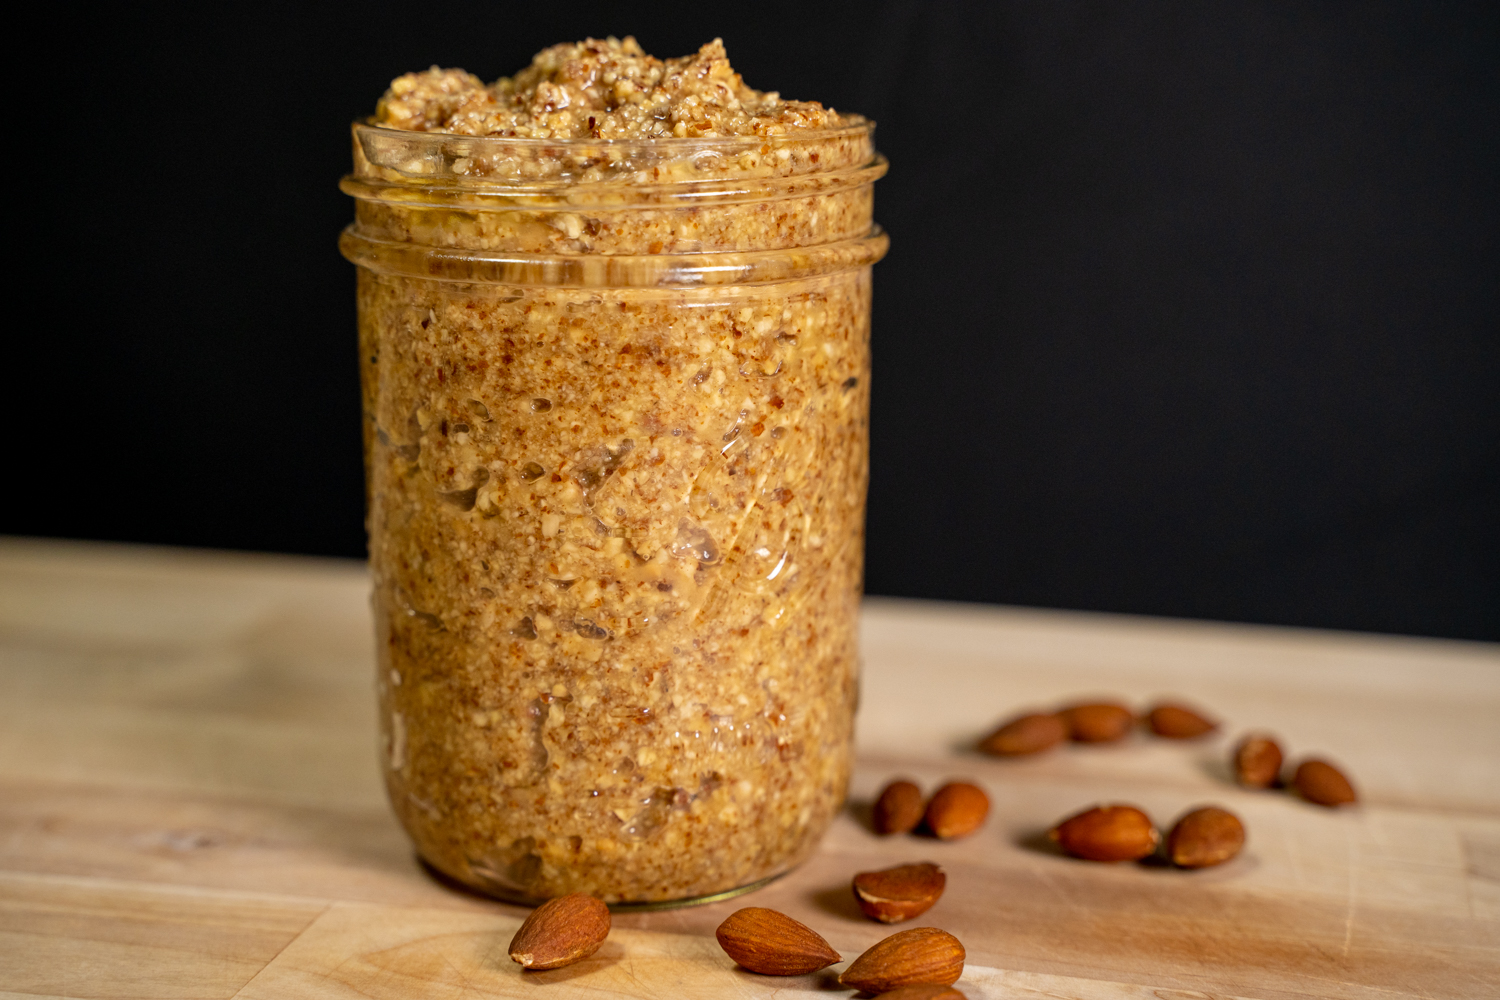 Jar of chunky almond butter